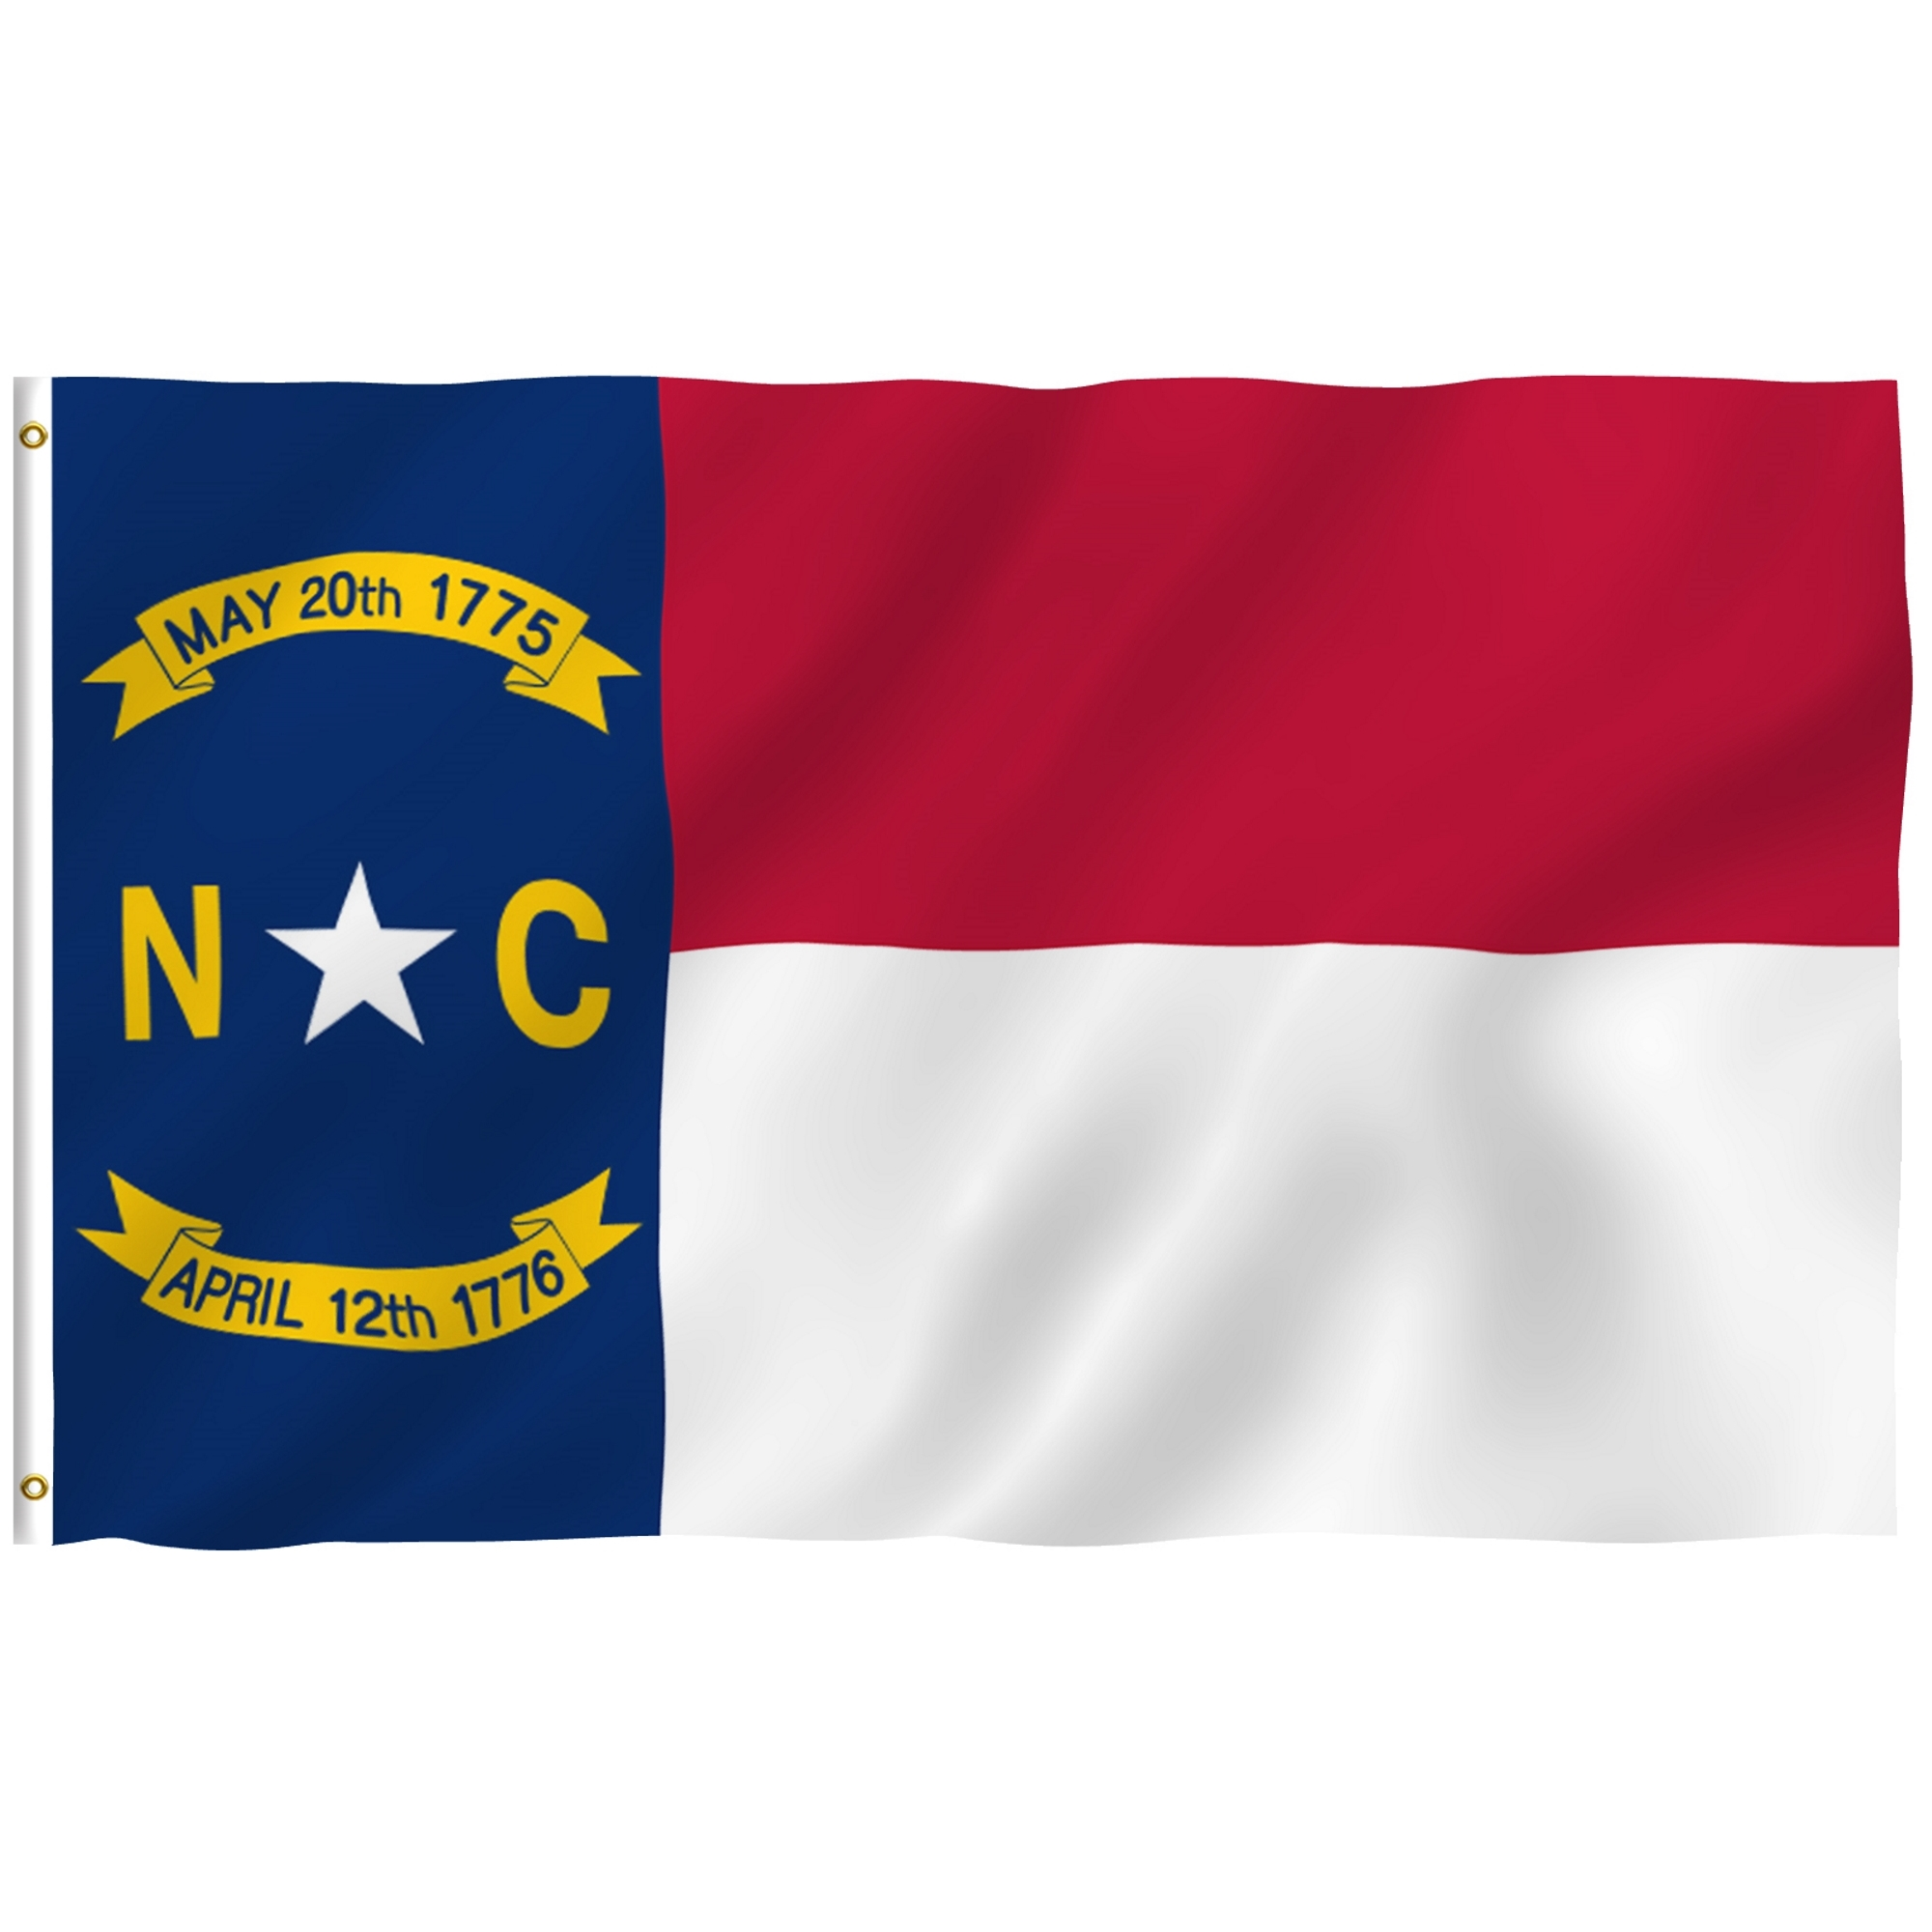 ANLEY [Fly Breeze] 3x5 Feet North Carolina State Flag - Vivid Color and UV Fade Resistant - Canvas Header and Brass Grommets - North Carolina NC Banner Flags